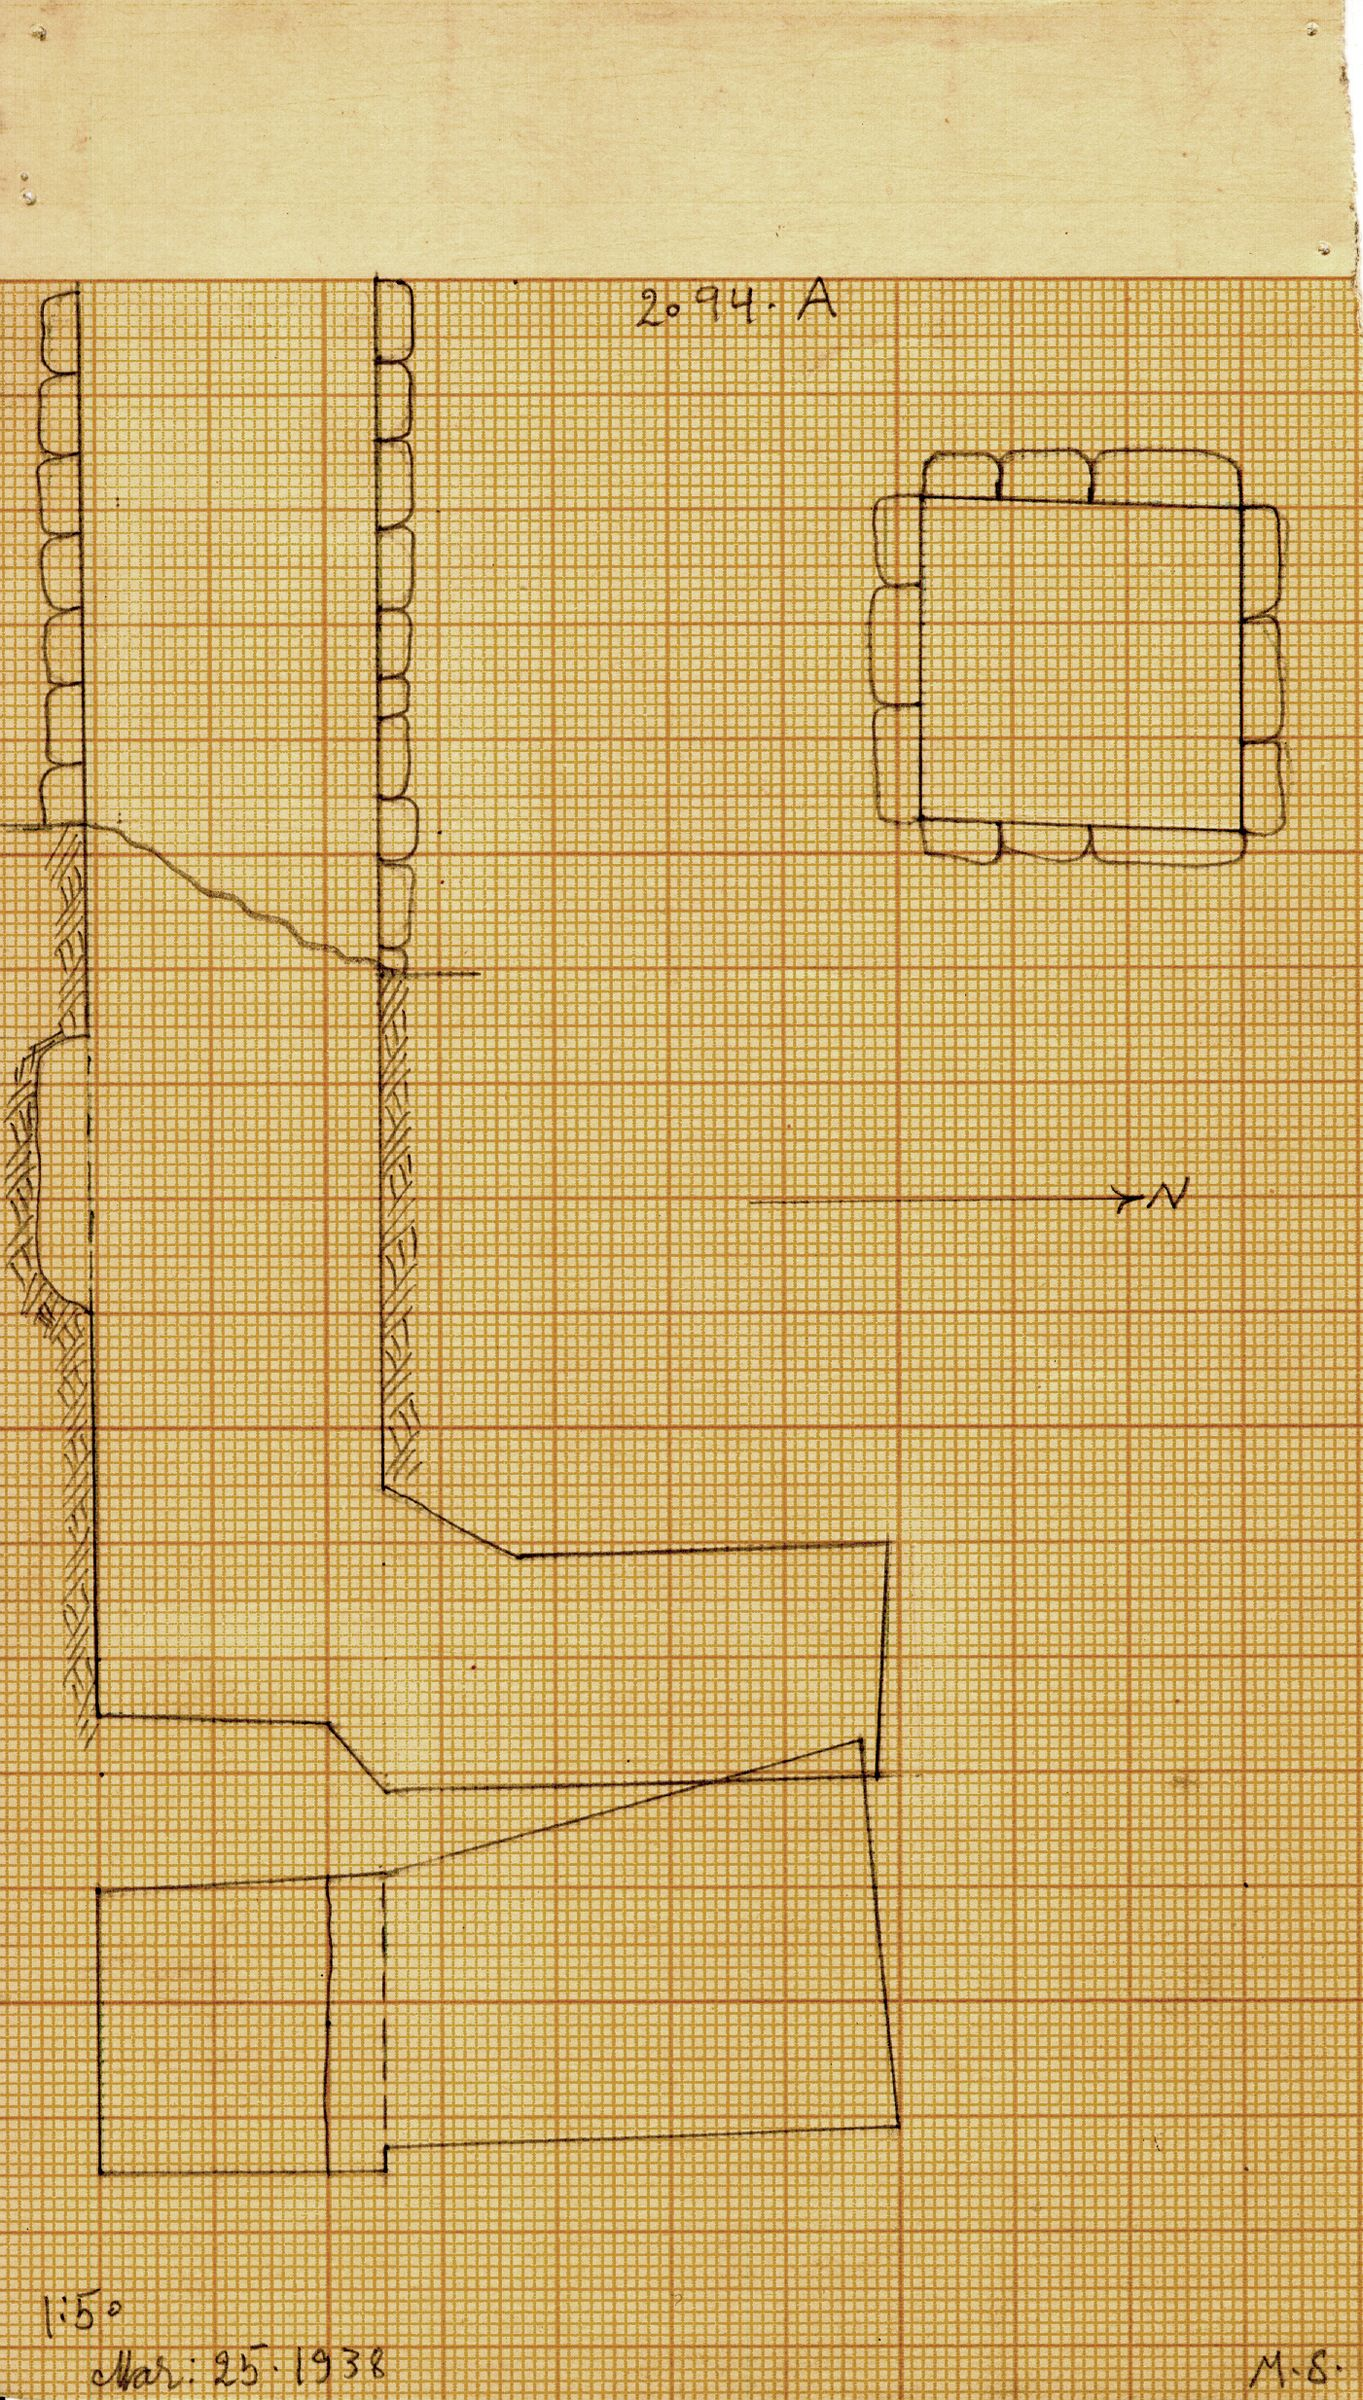 Maps and plans: G 2094, Shaft A